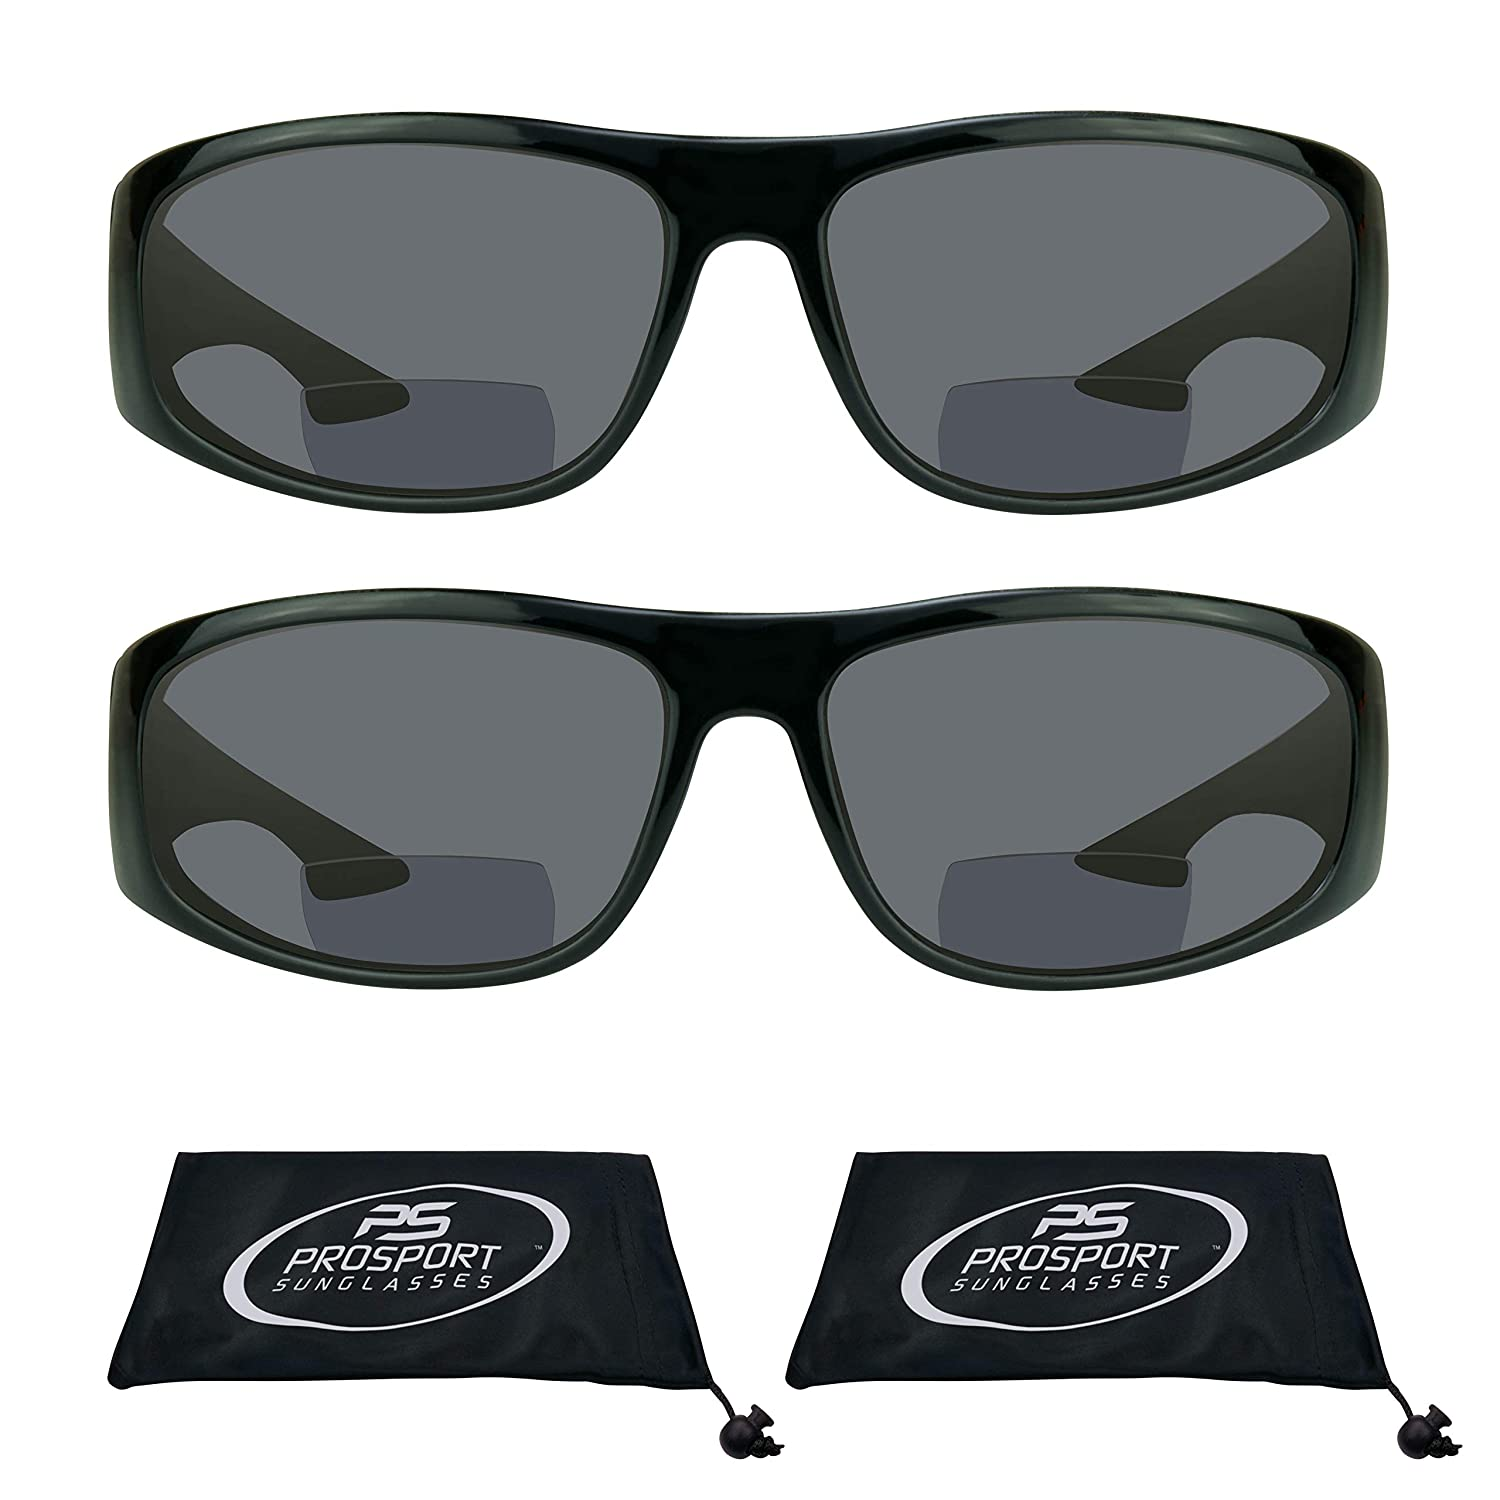 2550d07e402 Amazon.com  proSPORT Bifocal Sun Reader Sunglasses for Men and Women.  Sporty Wraparound Full Frame with Nearly Invisible Reading Line  Clothing